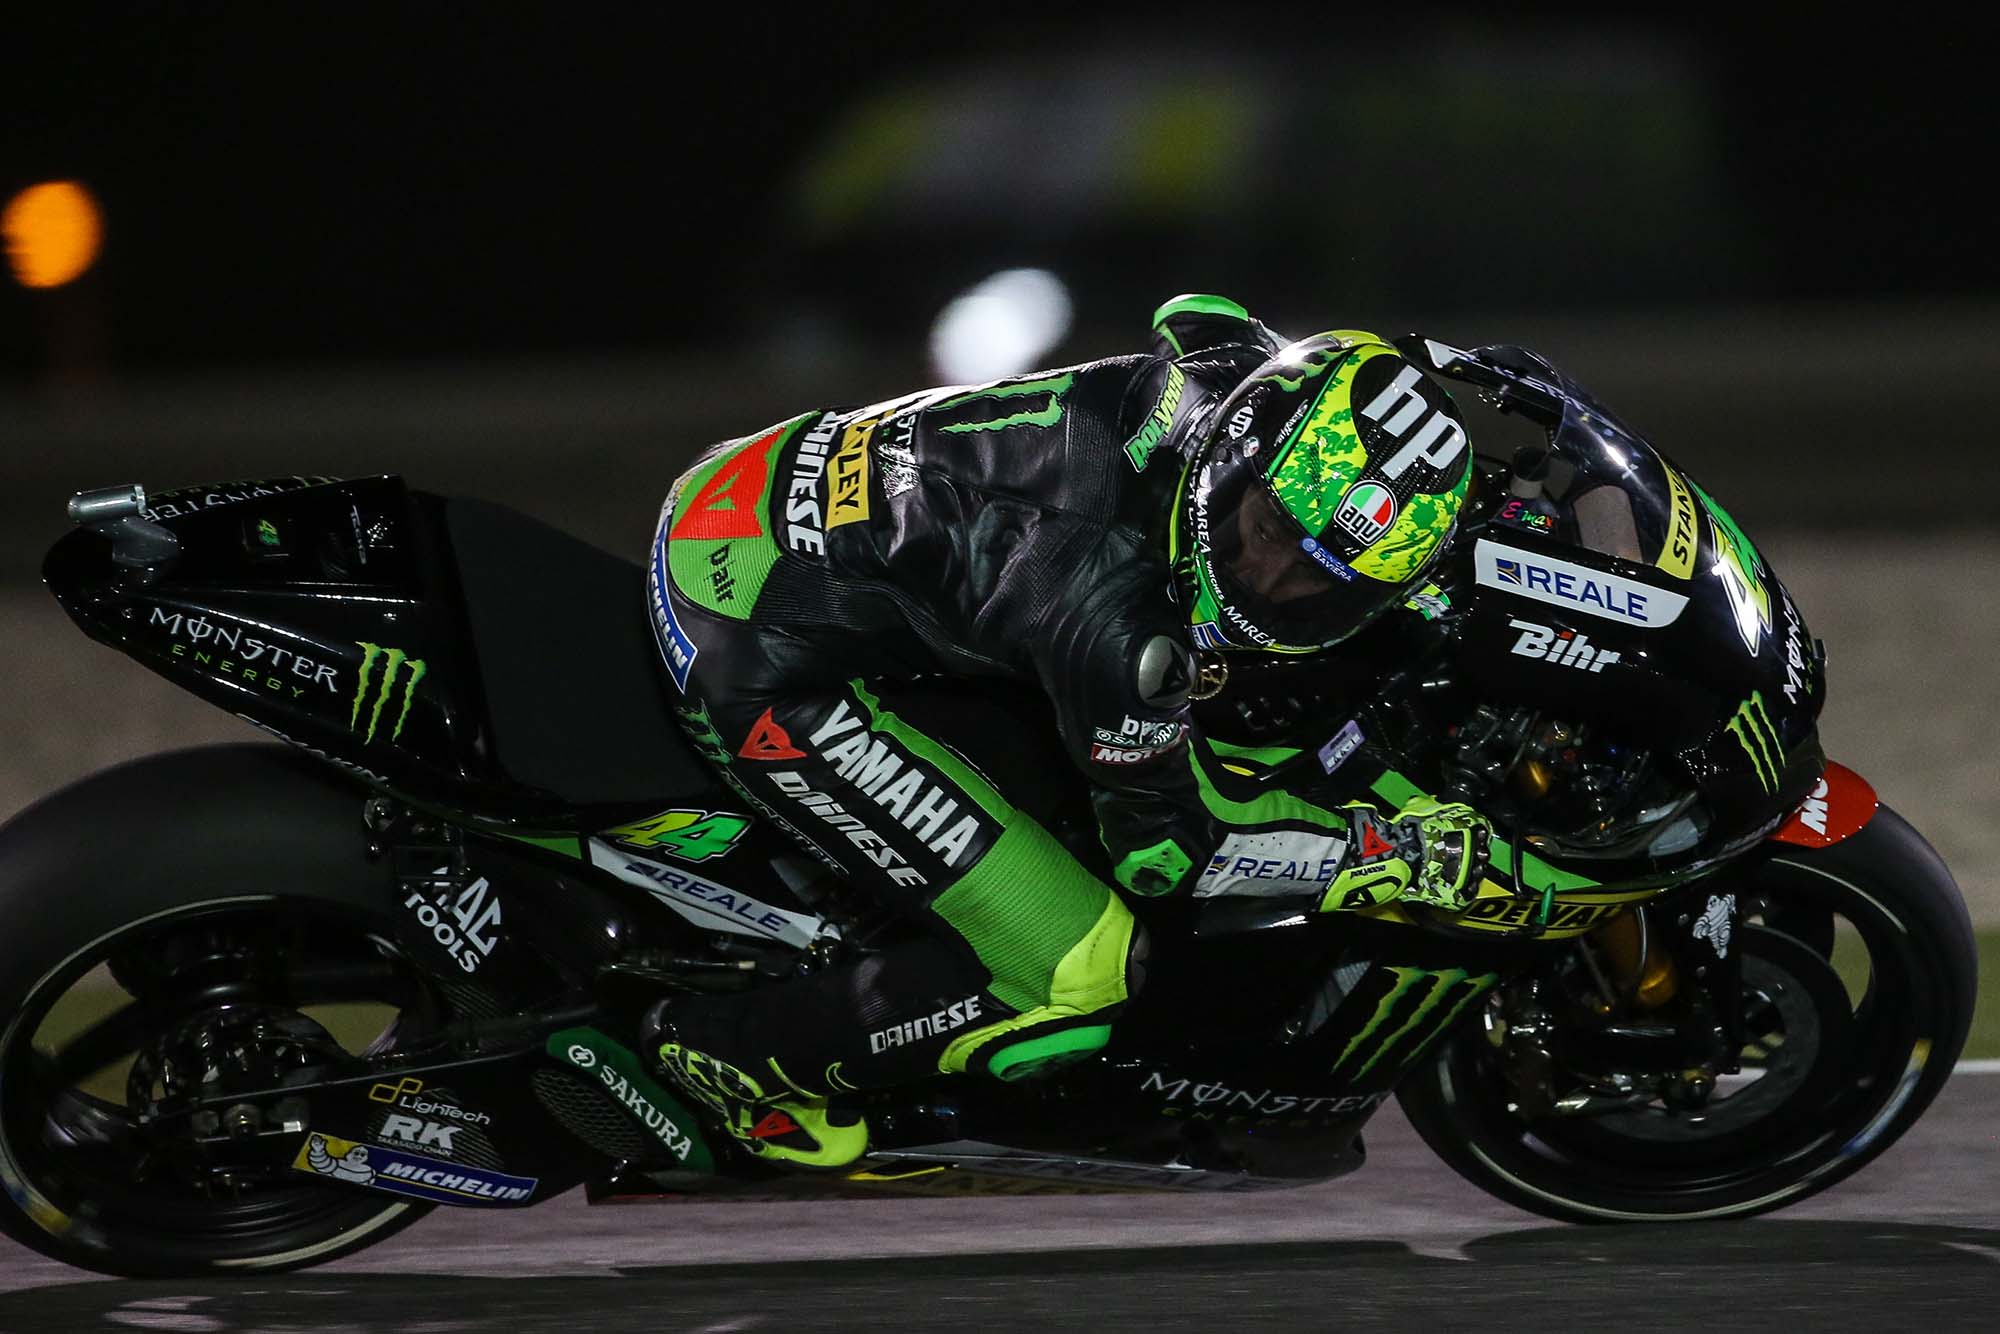 MotoGP Photos from Thursday at Qatar by CormacGP